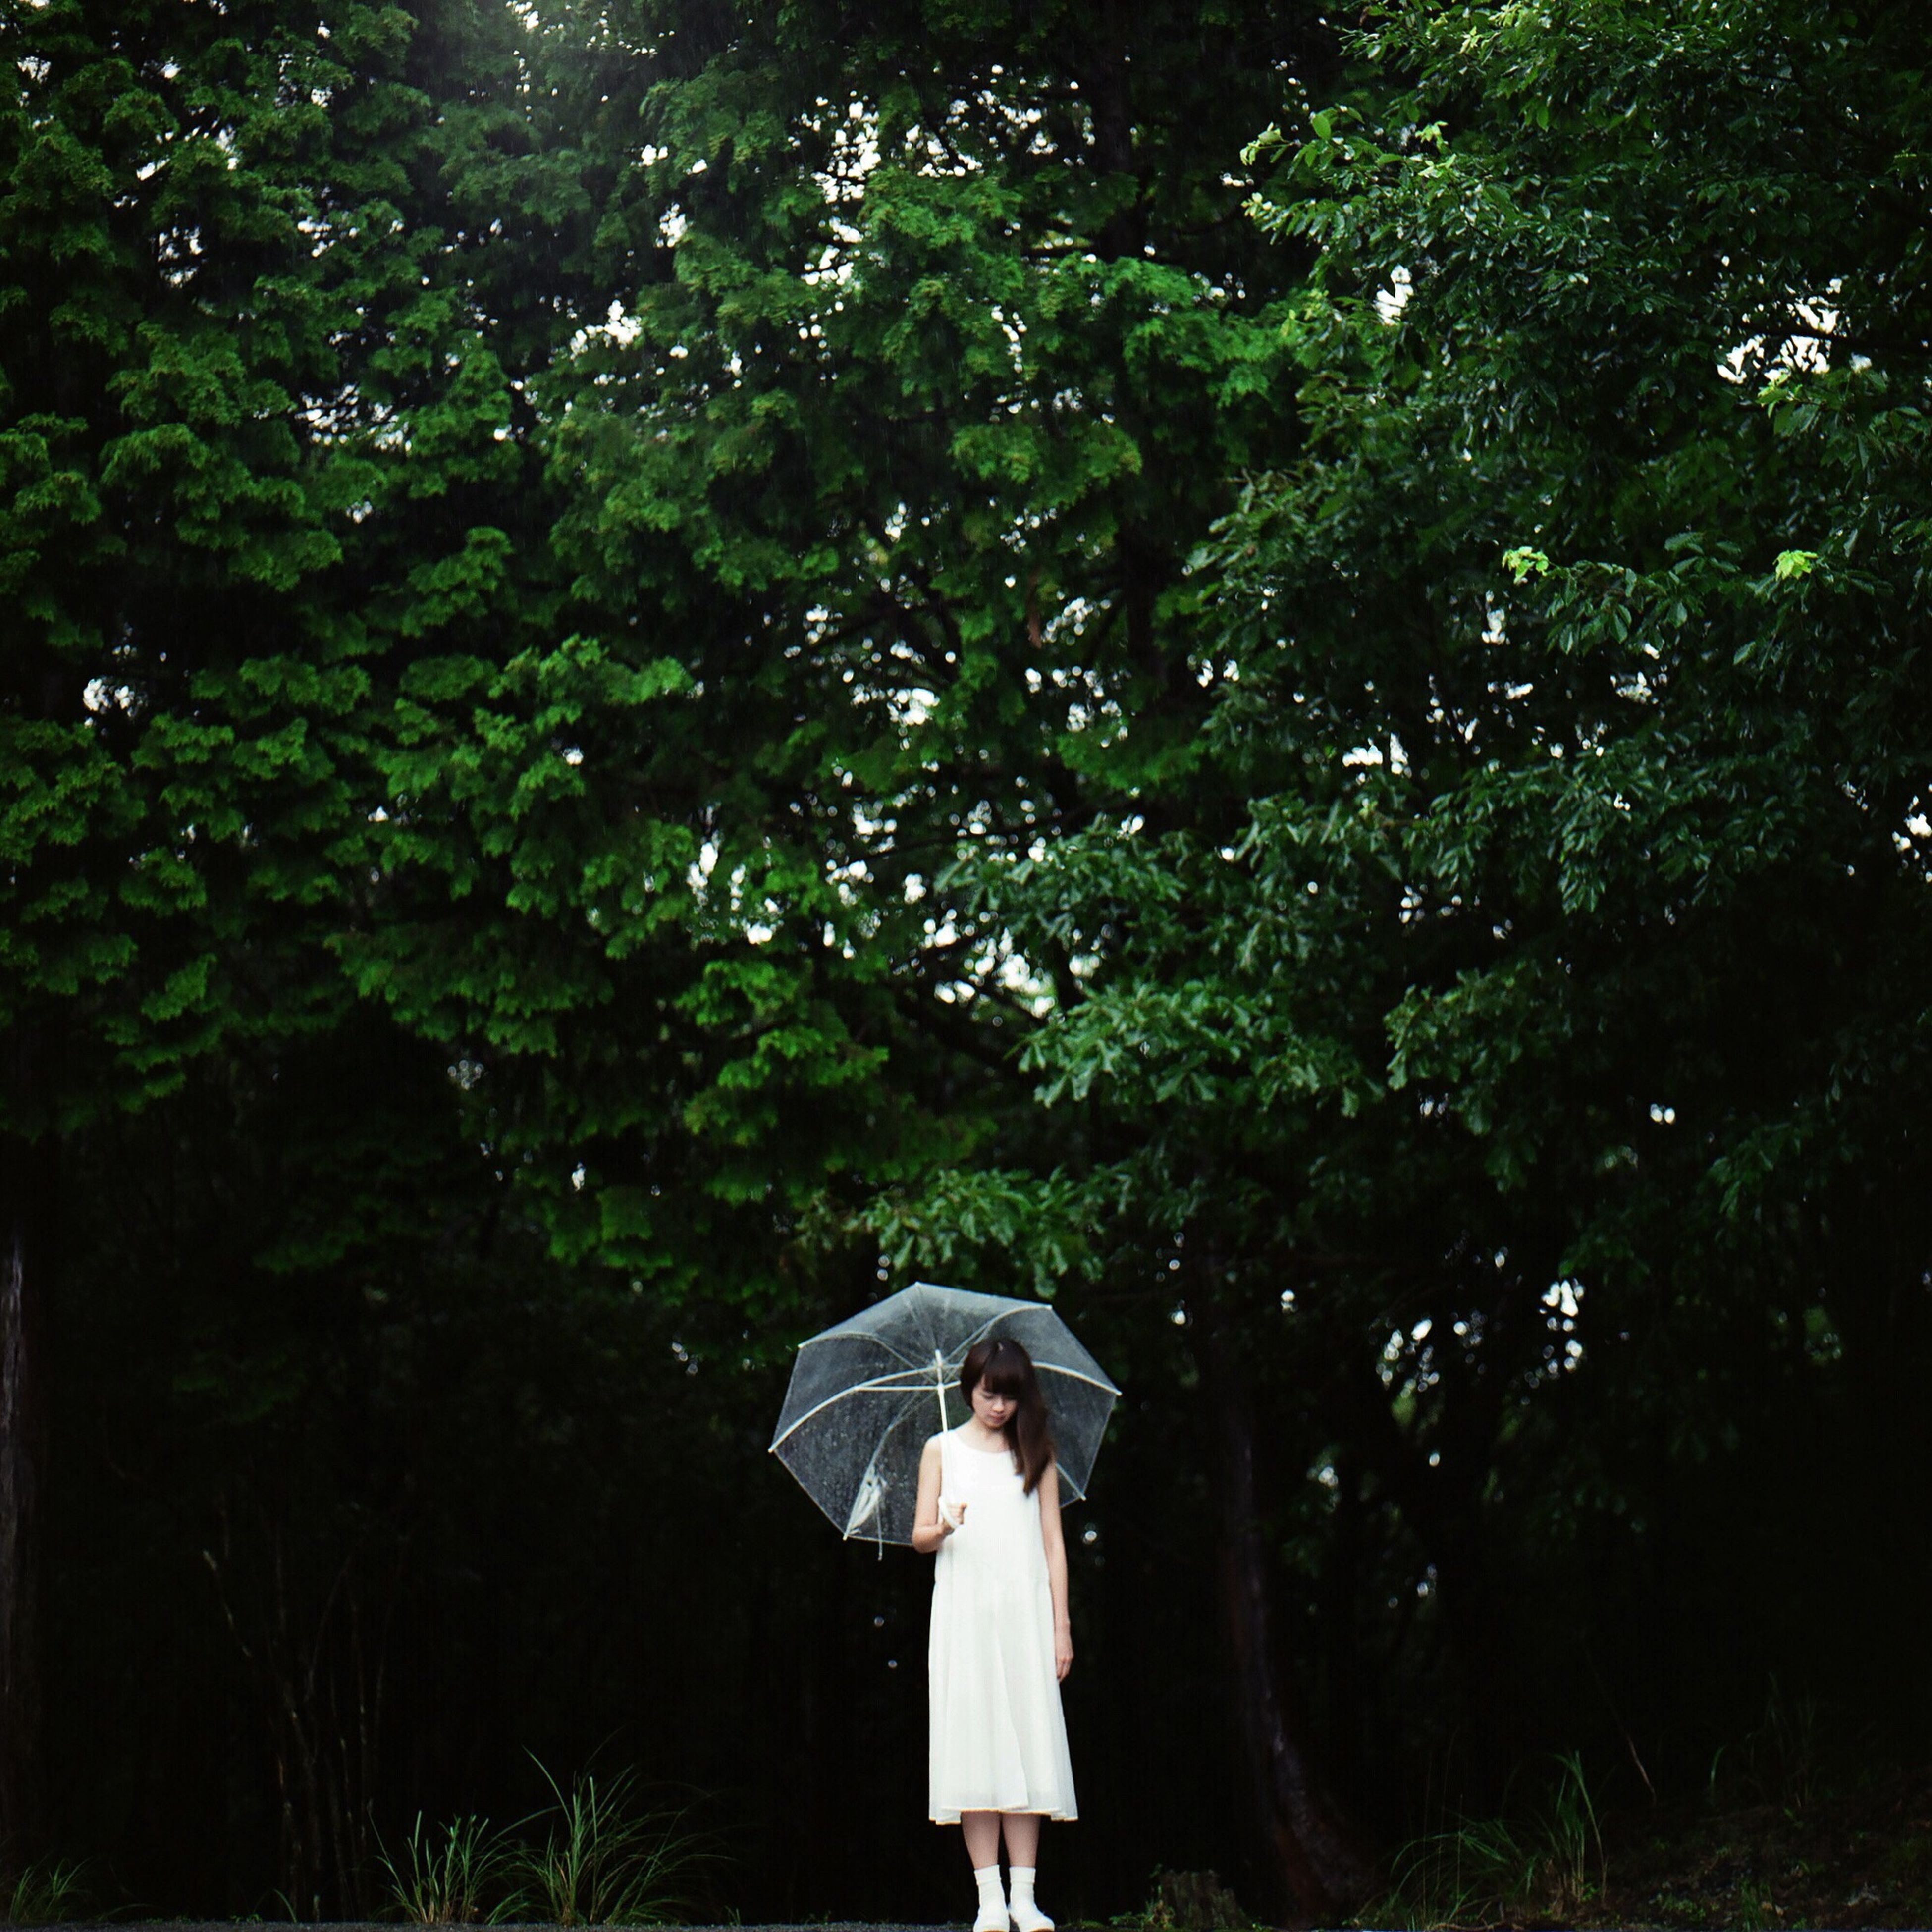 tree, lifestyles, full length, casual clothing, standing, rear view, leisure activity, three quarter length, young adult, person, young women, walking, growth, side view, childhood, nature, green color